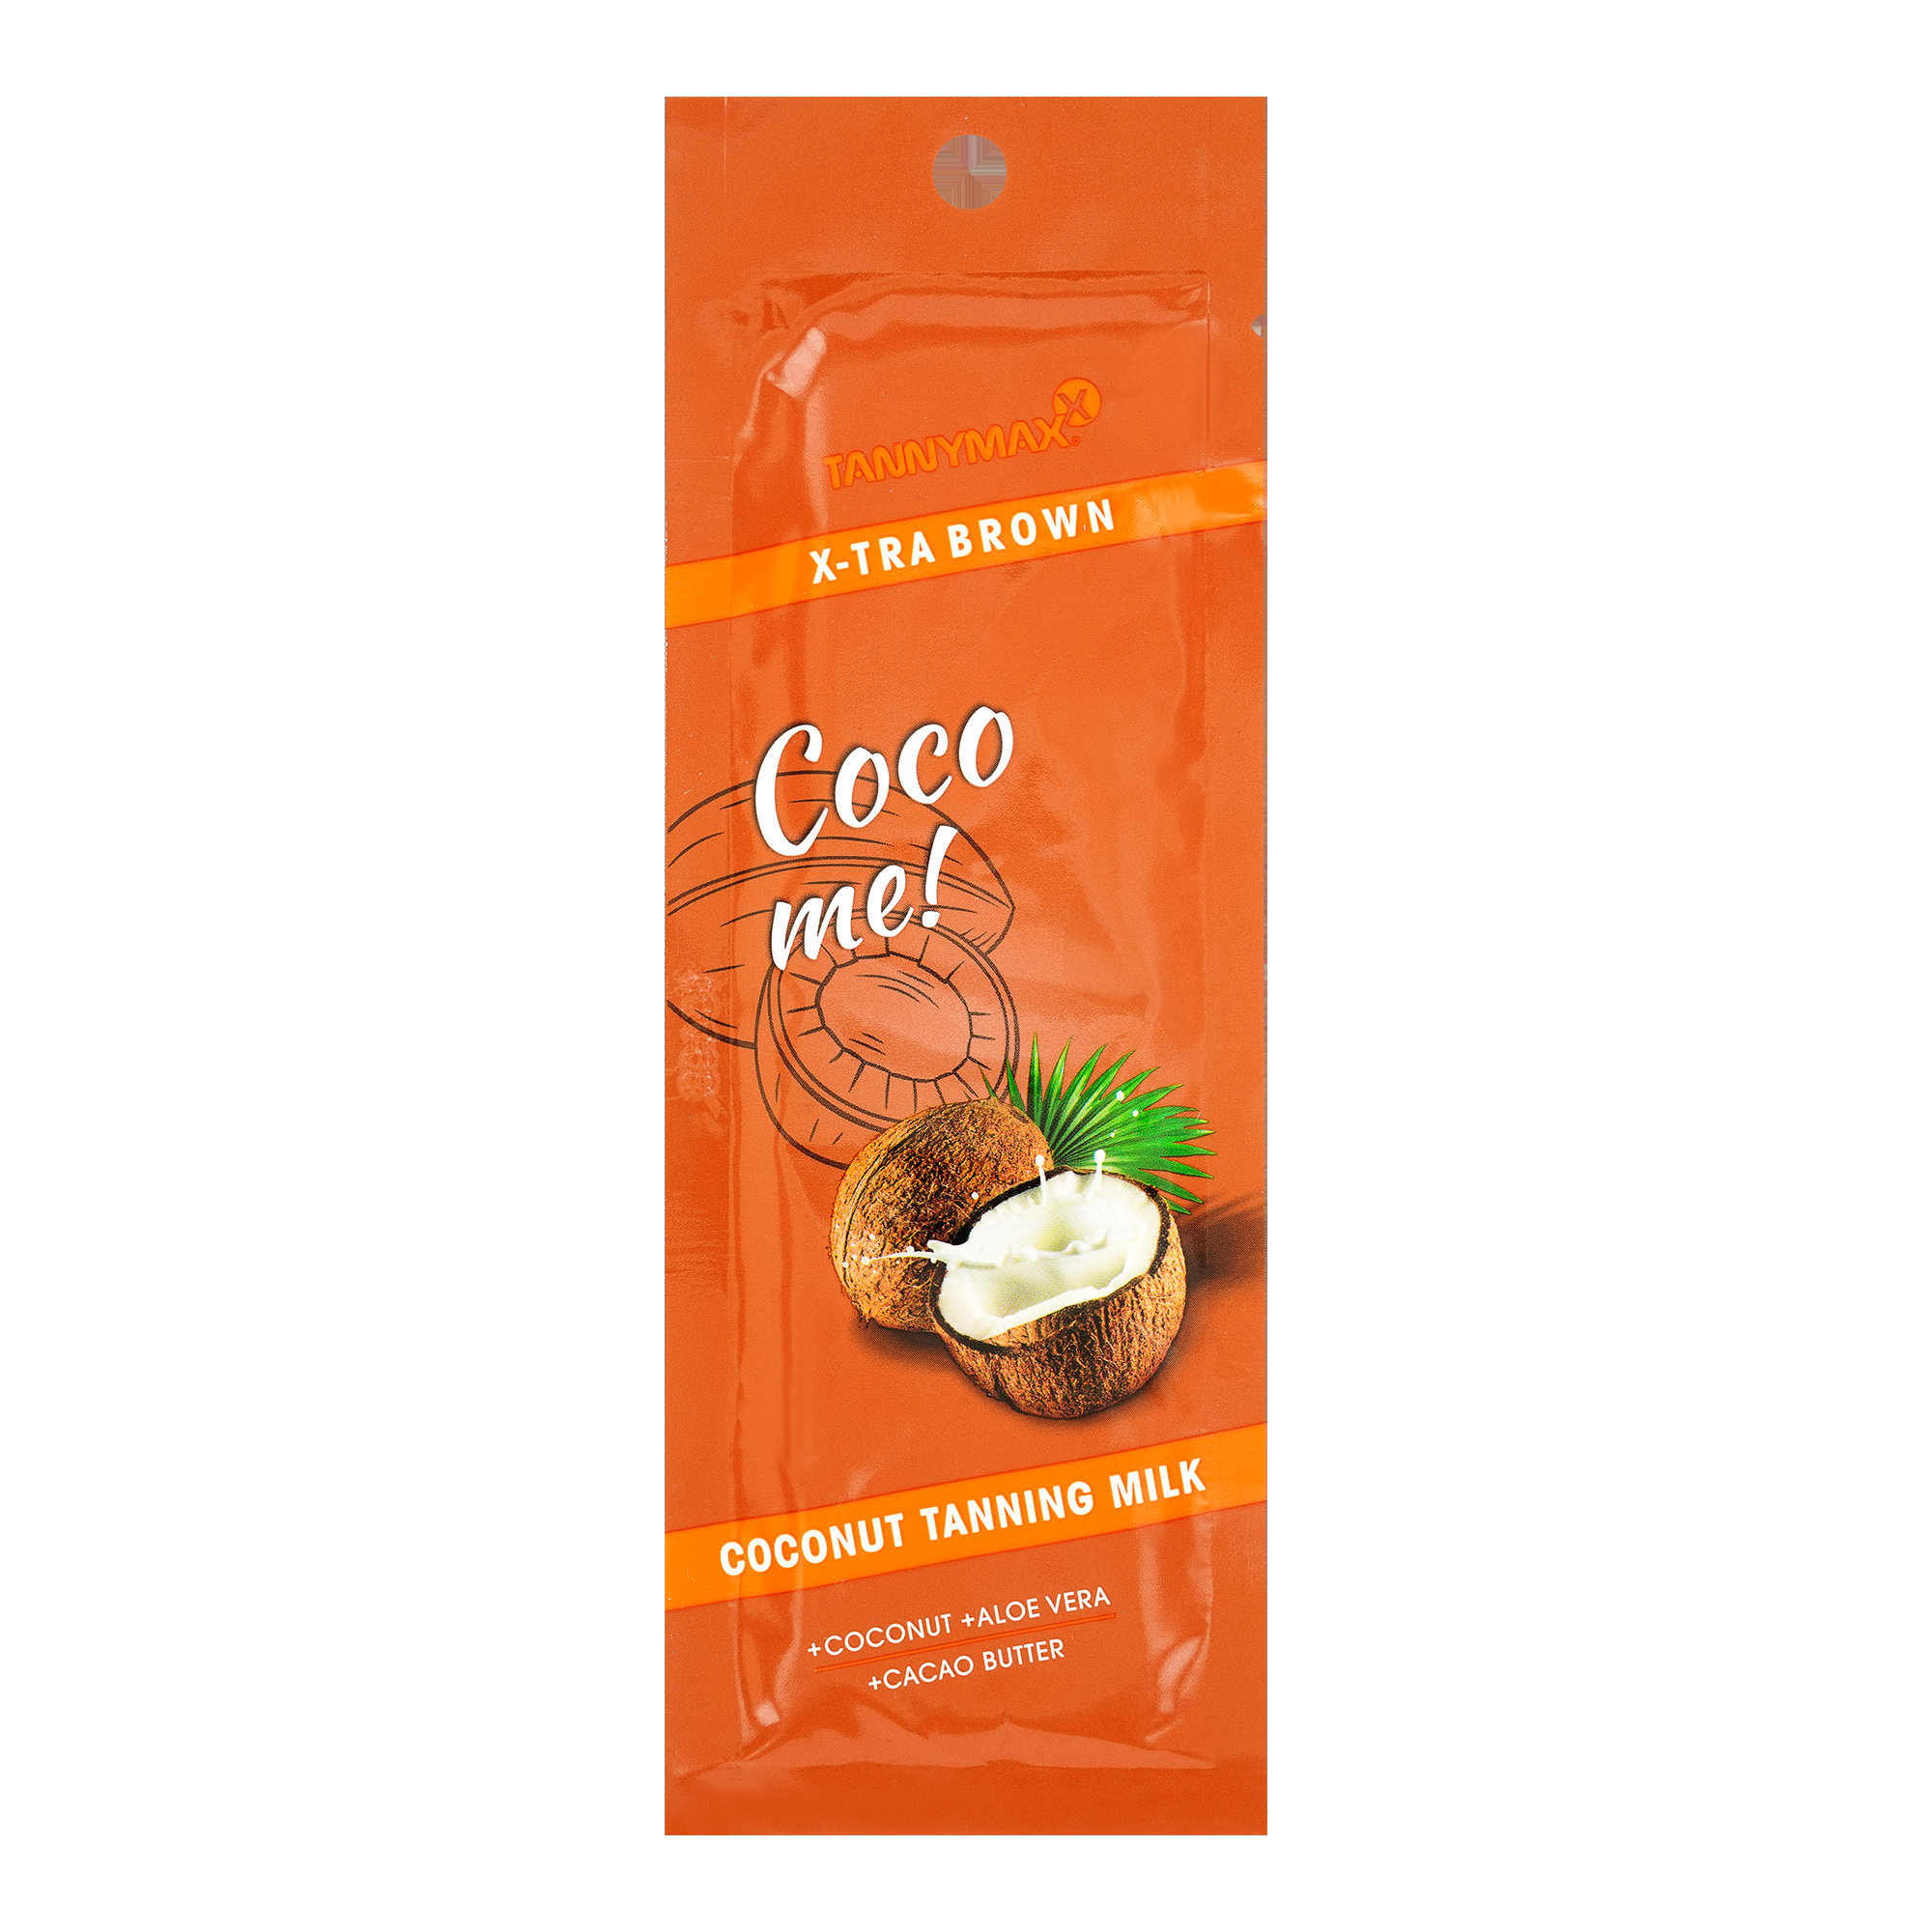 XTRA Brown Coconut Tanning 15ml